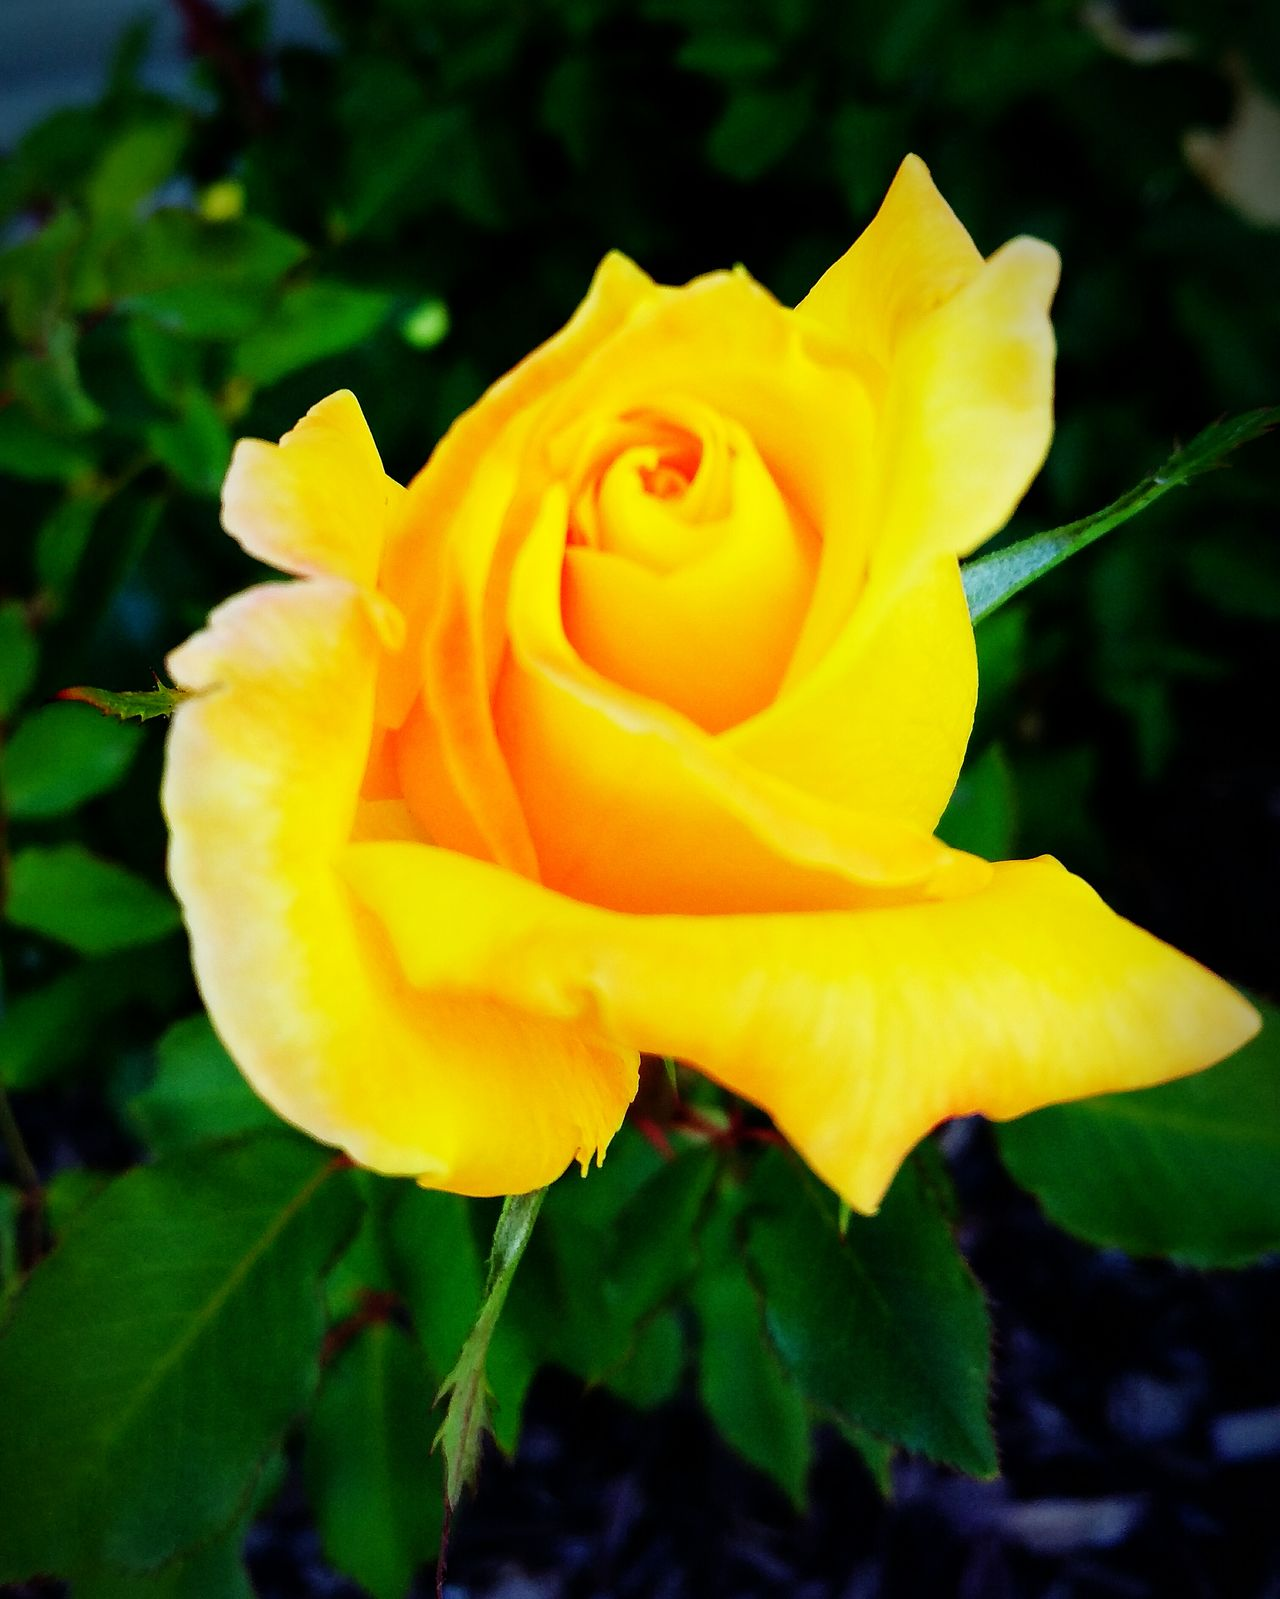 Yellow Rose Rosé Rose Bud Friendship. ♡   Pretty Rose  Rose Bud Blossum Blooming Flowerporn Roseporn Yellow Petals Close Up